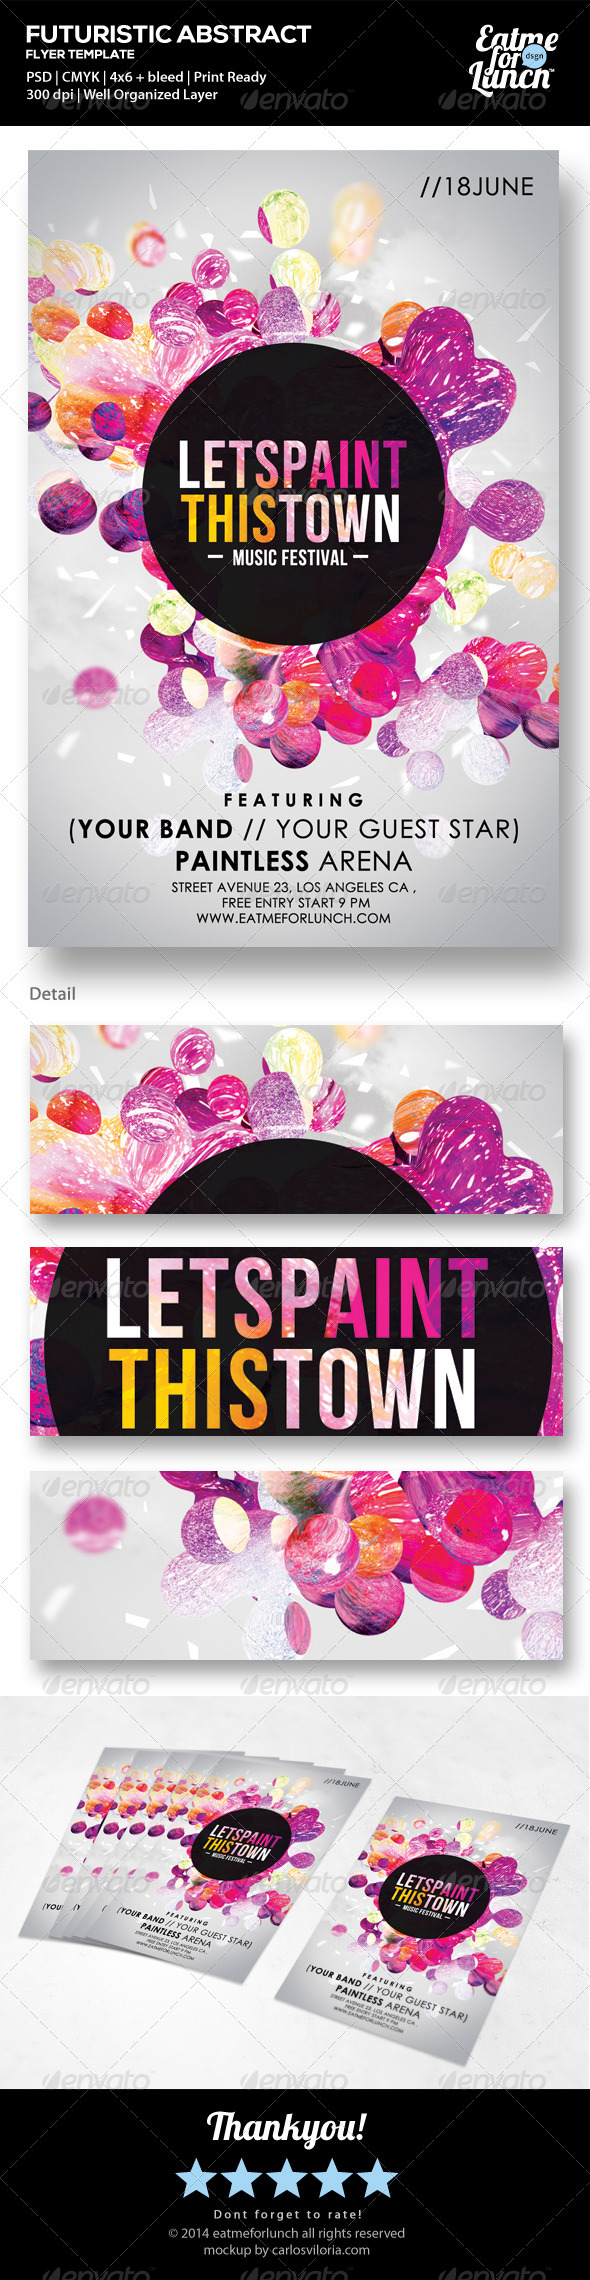 GraphicRiver Futuristic Abstract Flyer Lets Paint This Town 7345285